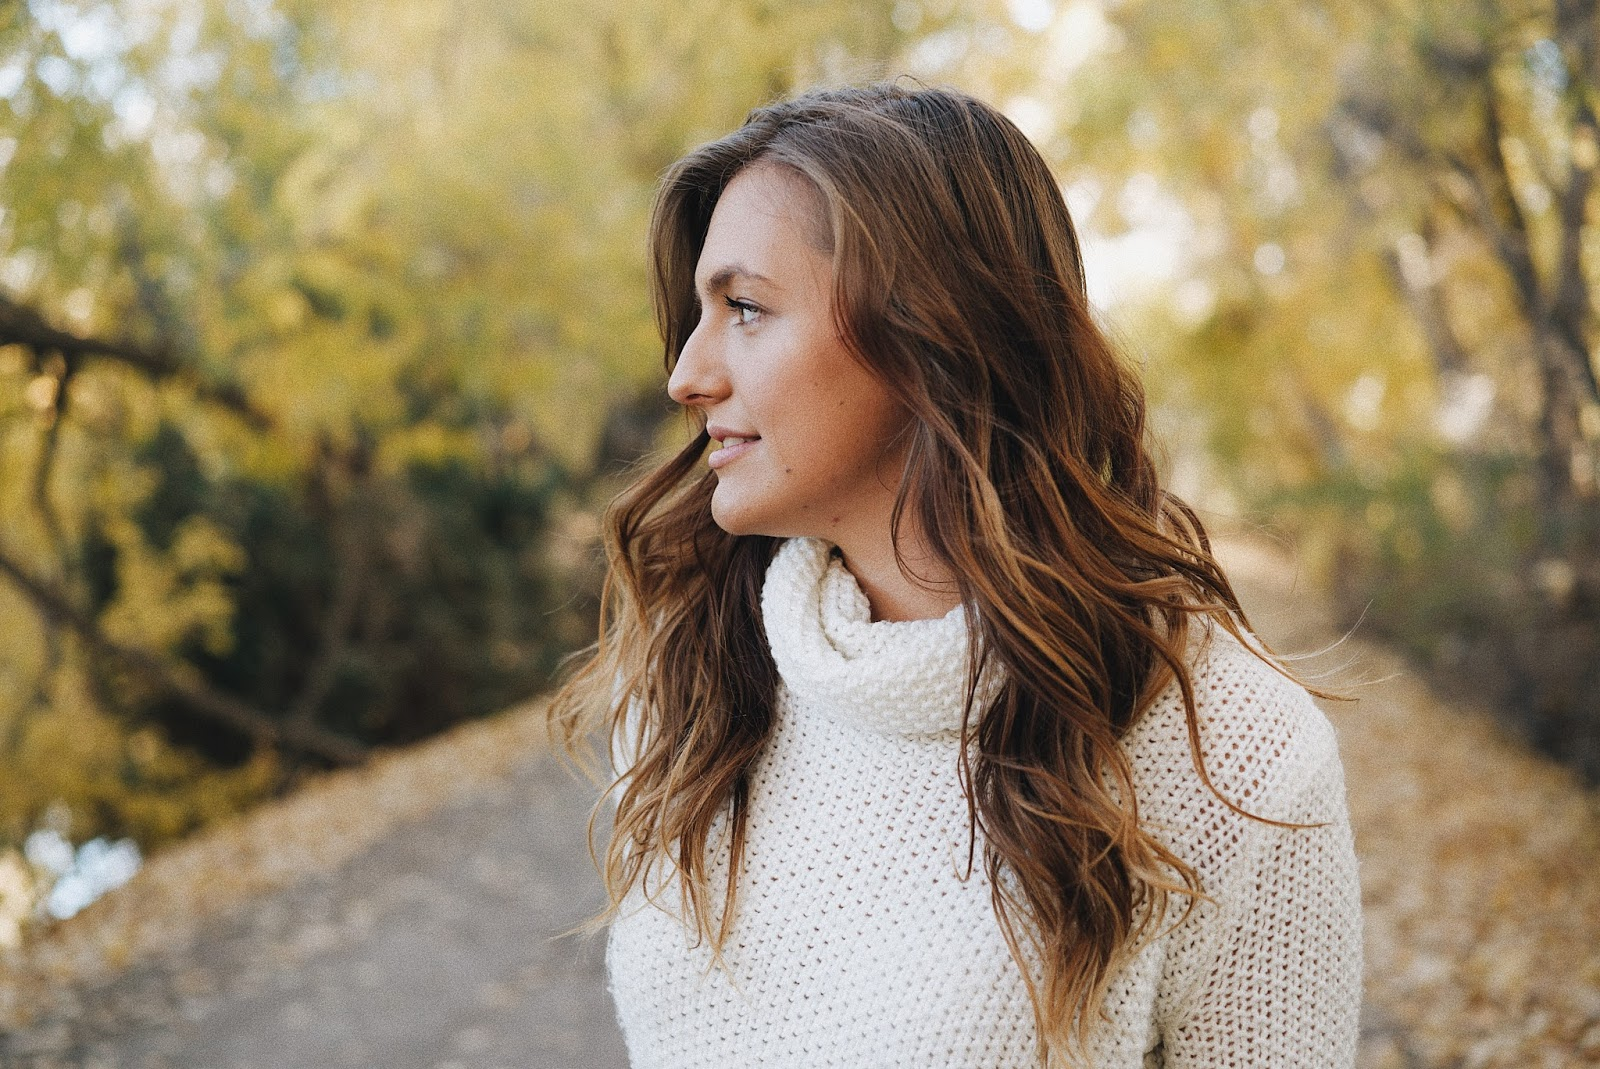 profile portrait forever 21 sweater fall style